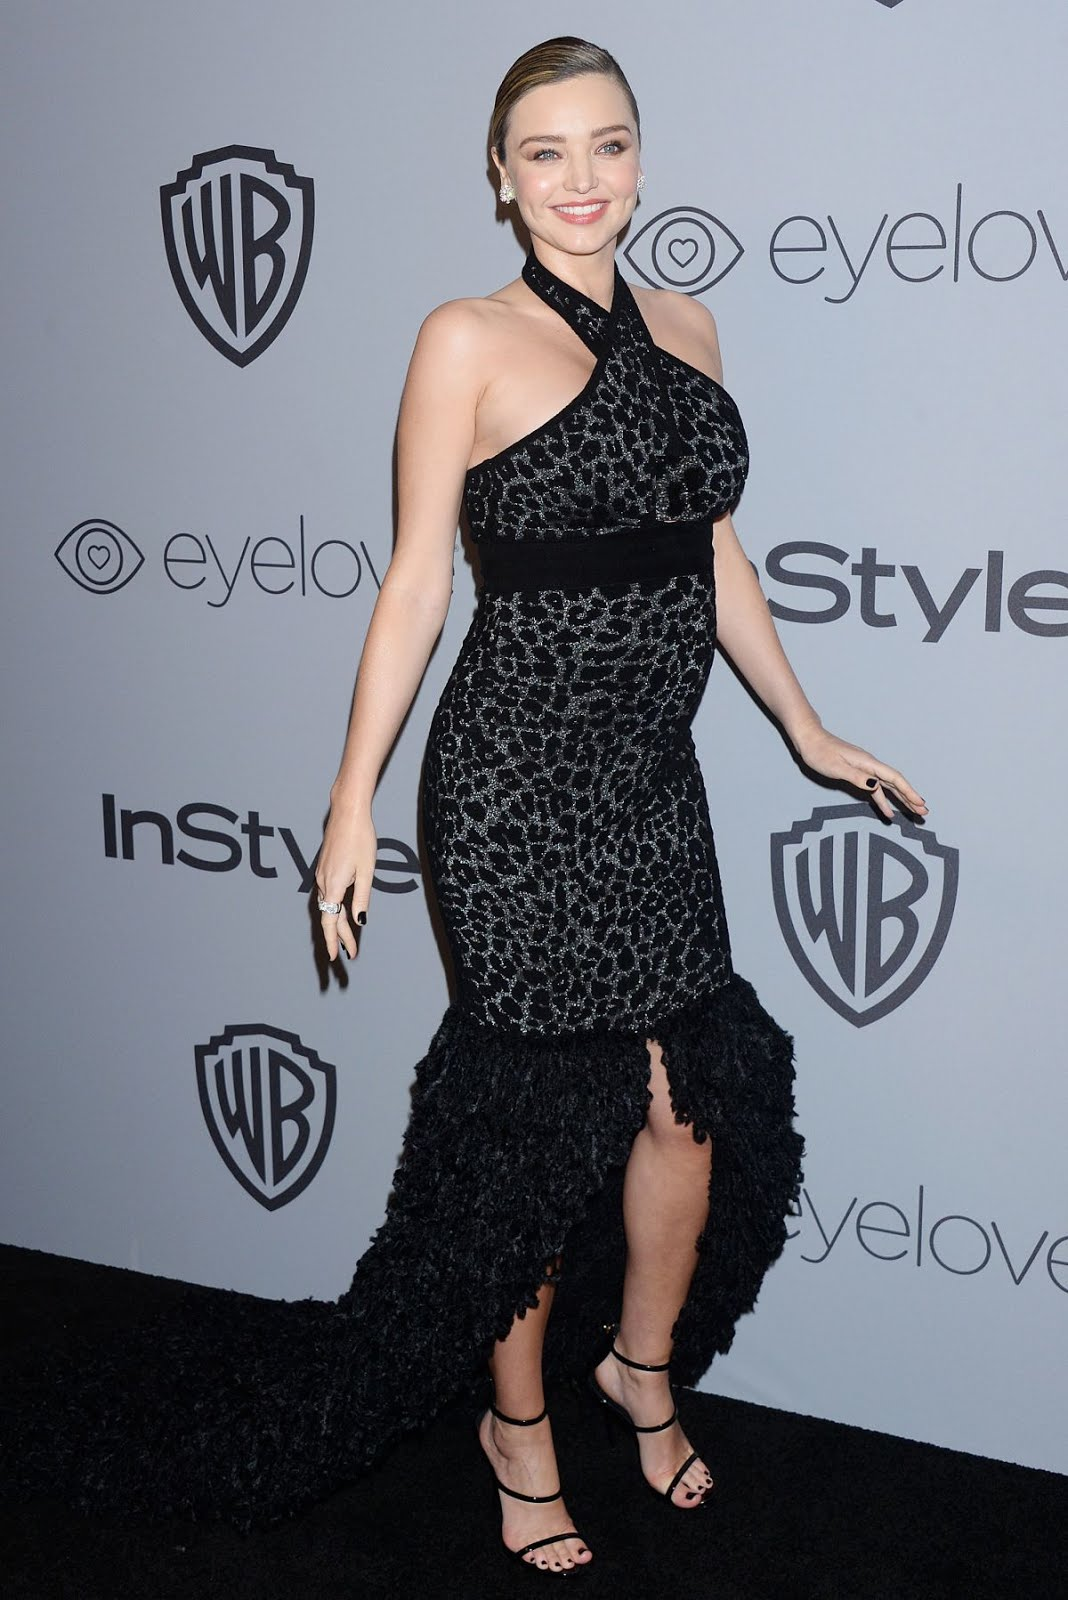 75th Golden Globes Photos:Pregnant Miranda Kerr at Instyle and Warner Bros Golden Globes 2018 After Party In Los Angeles